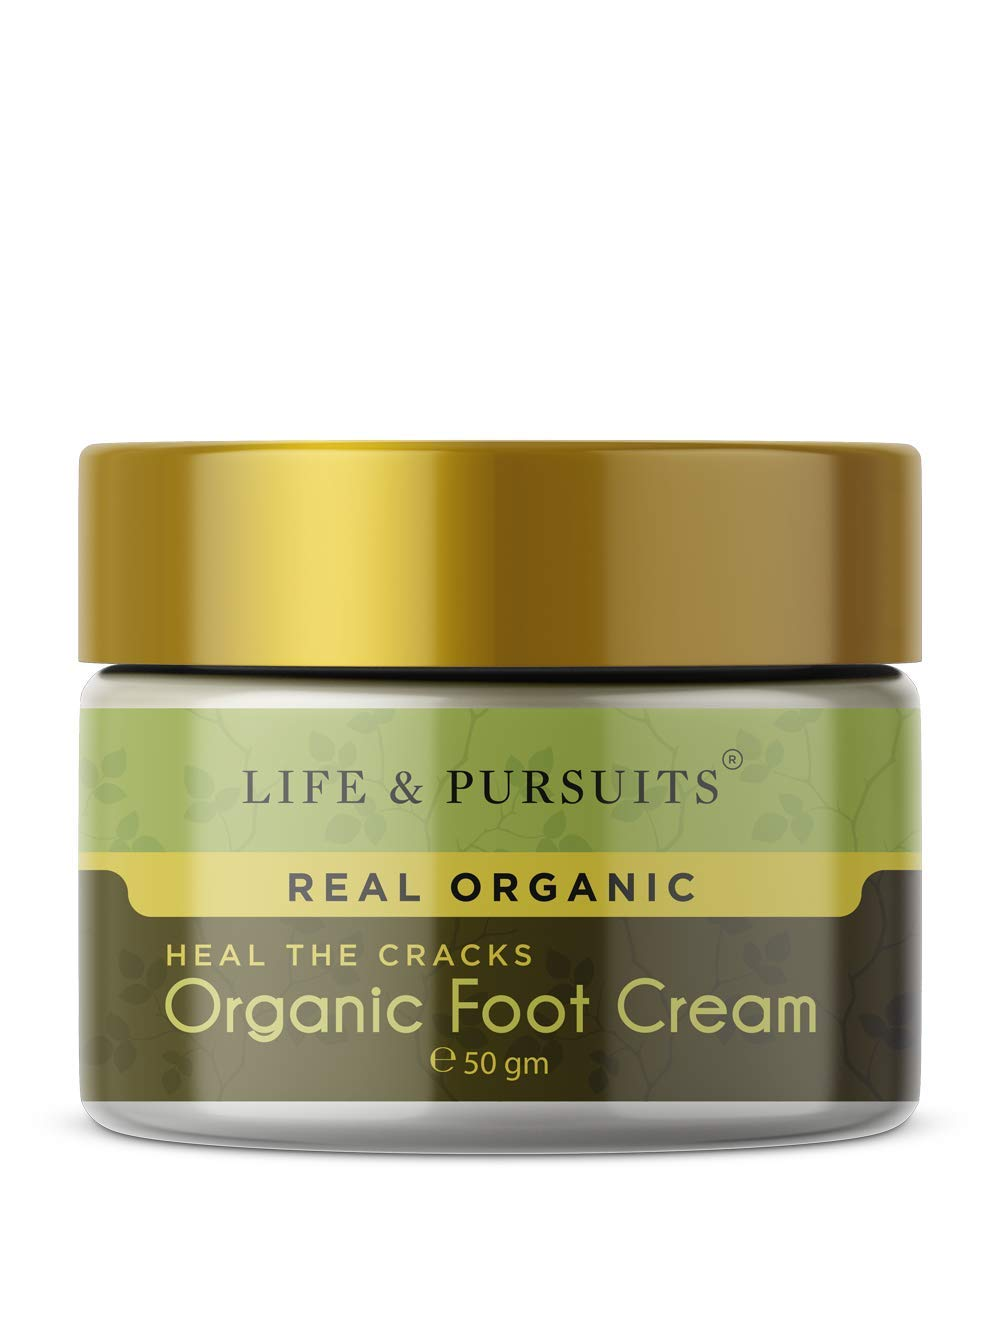 Life & Pursuits Organic Foot Cracks Healing Cream (1.76 oz / 50gm) for Rough, Dry and Cracked Heel | Organic Ayurvedic Foot Repair & Cracked Heels Cream